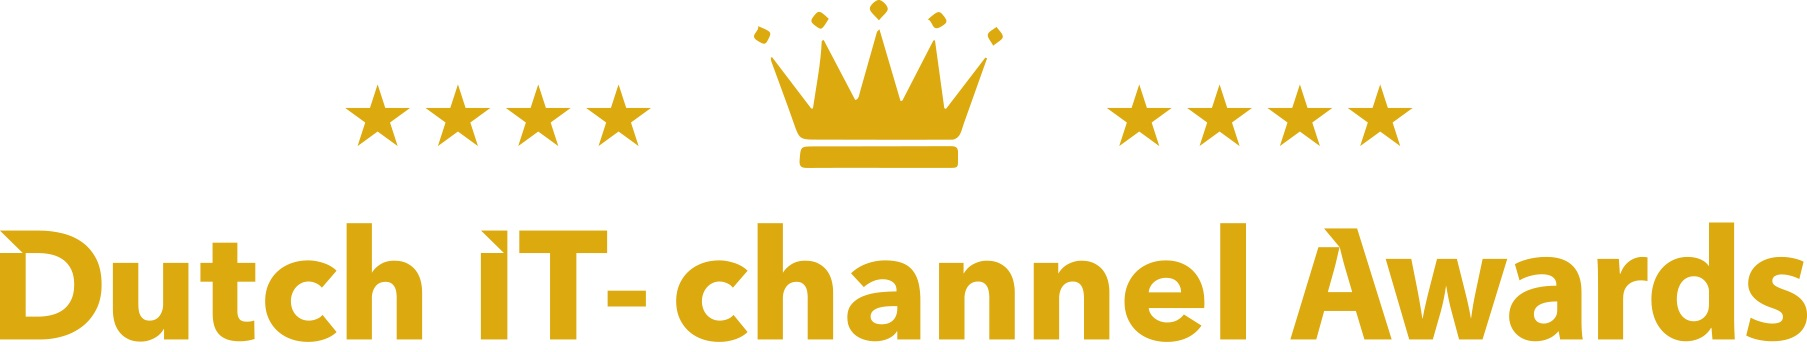 Dutch IT-Channel Awards logo